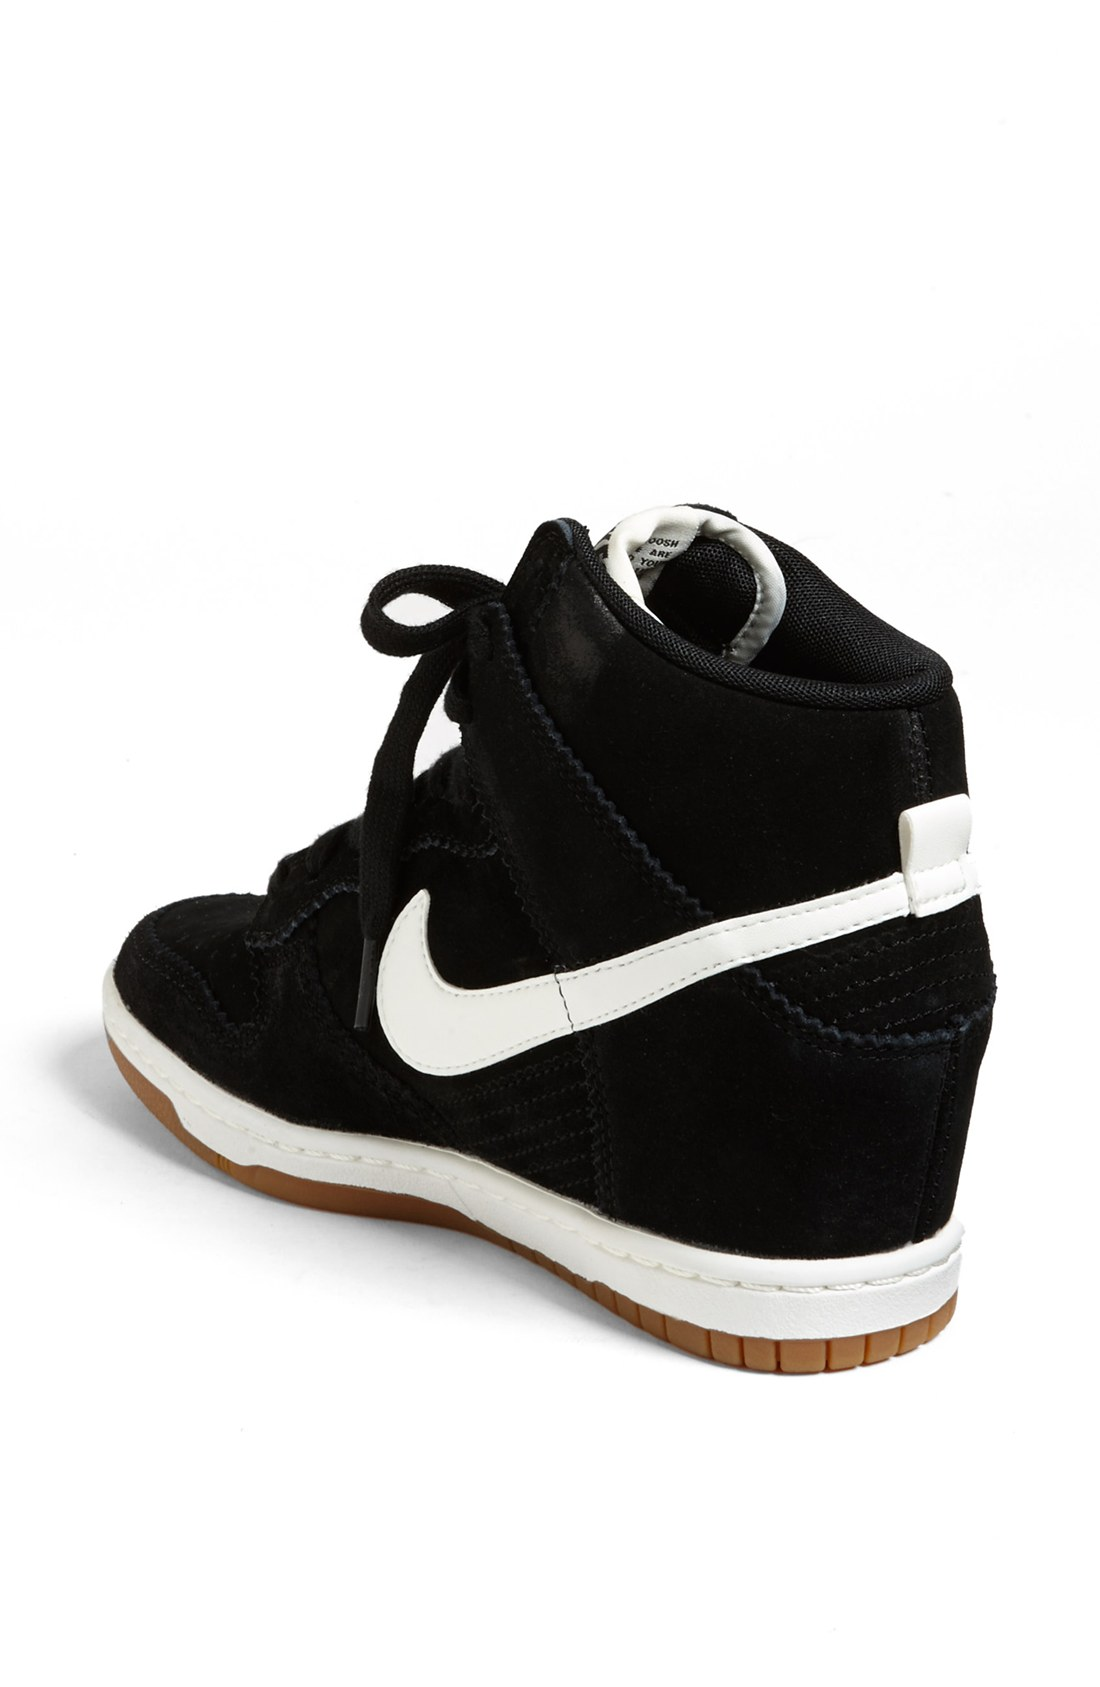 nike dunk sky hi wedge sneaker in black lyst. Black Bedroom Furniture Sets. Home Design Ideas